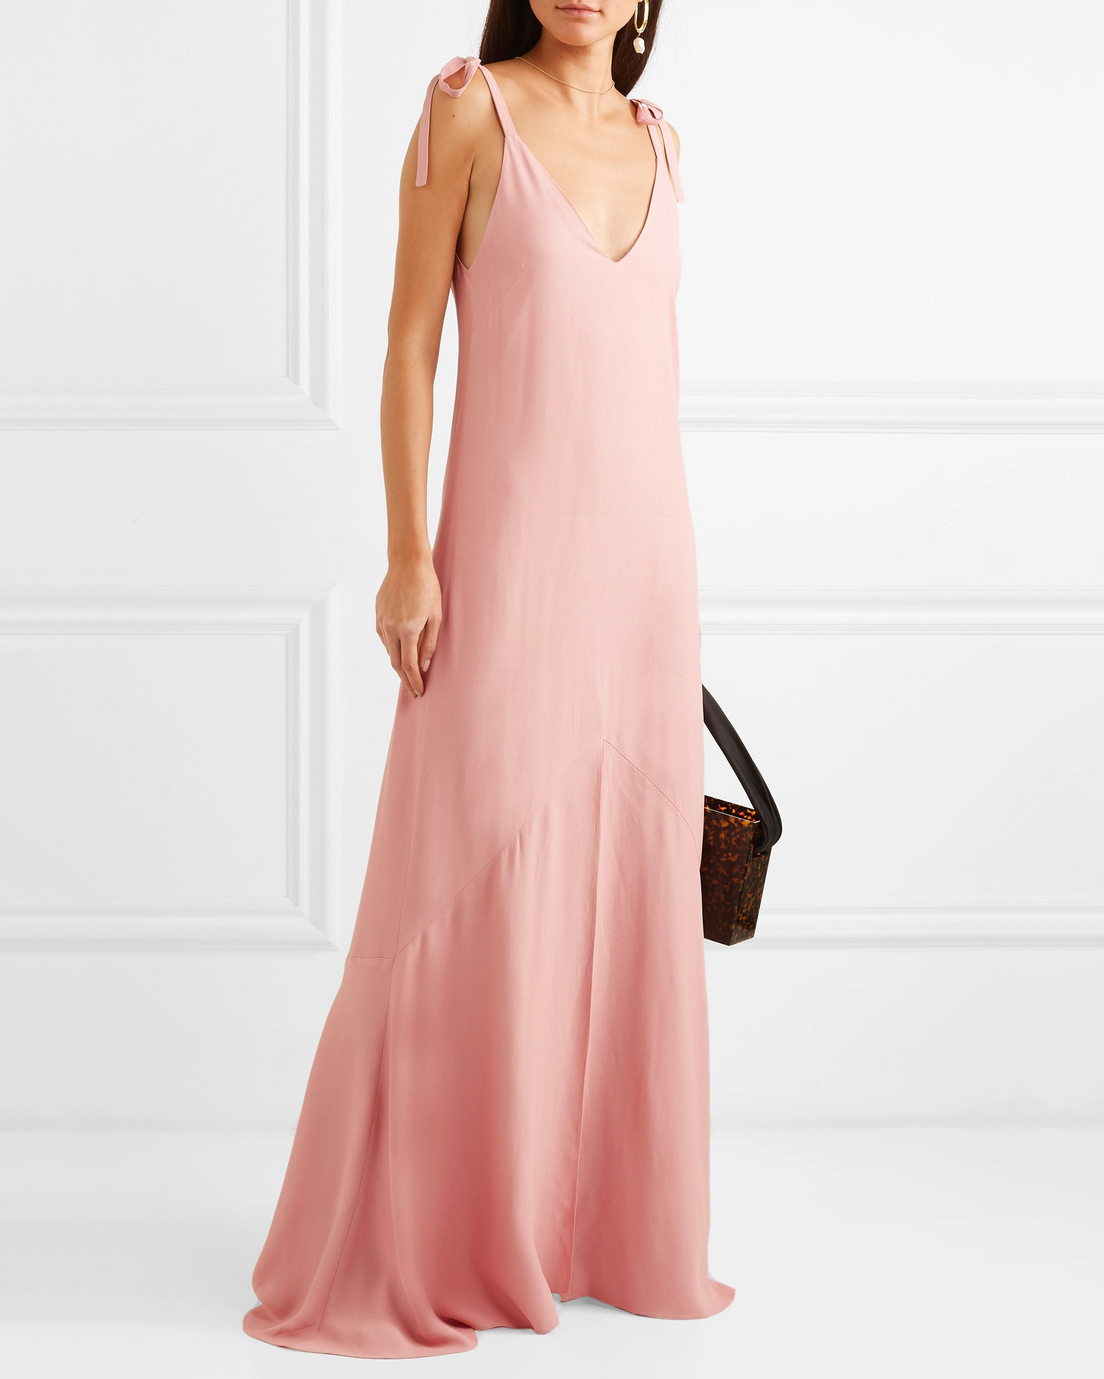 pink a-line bridesmaid v-neck dress